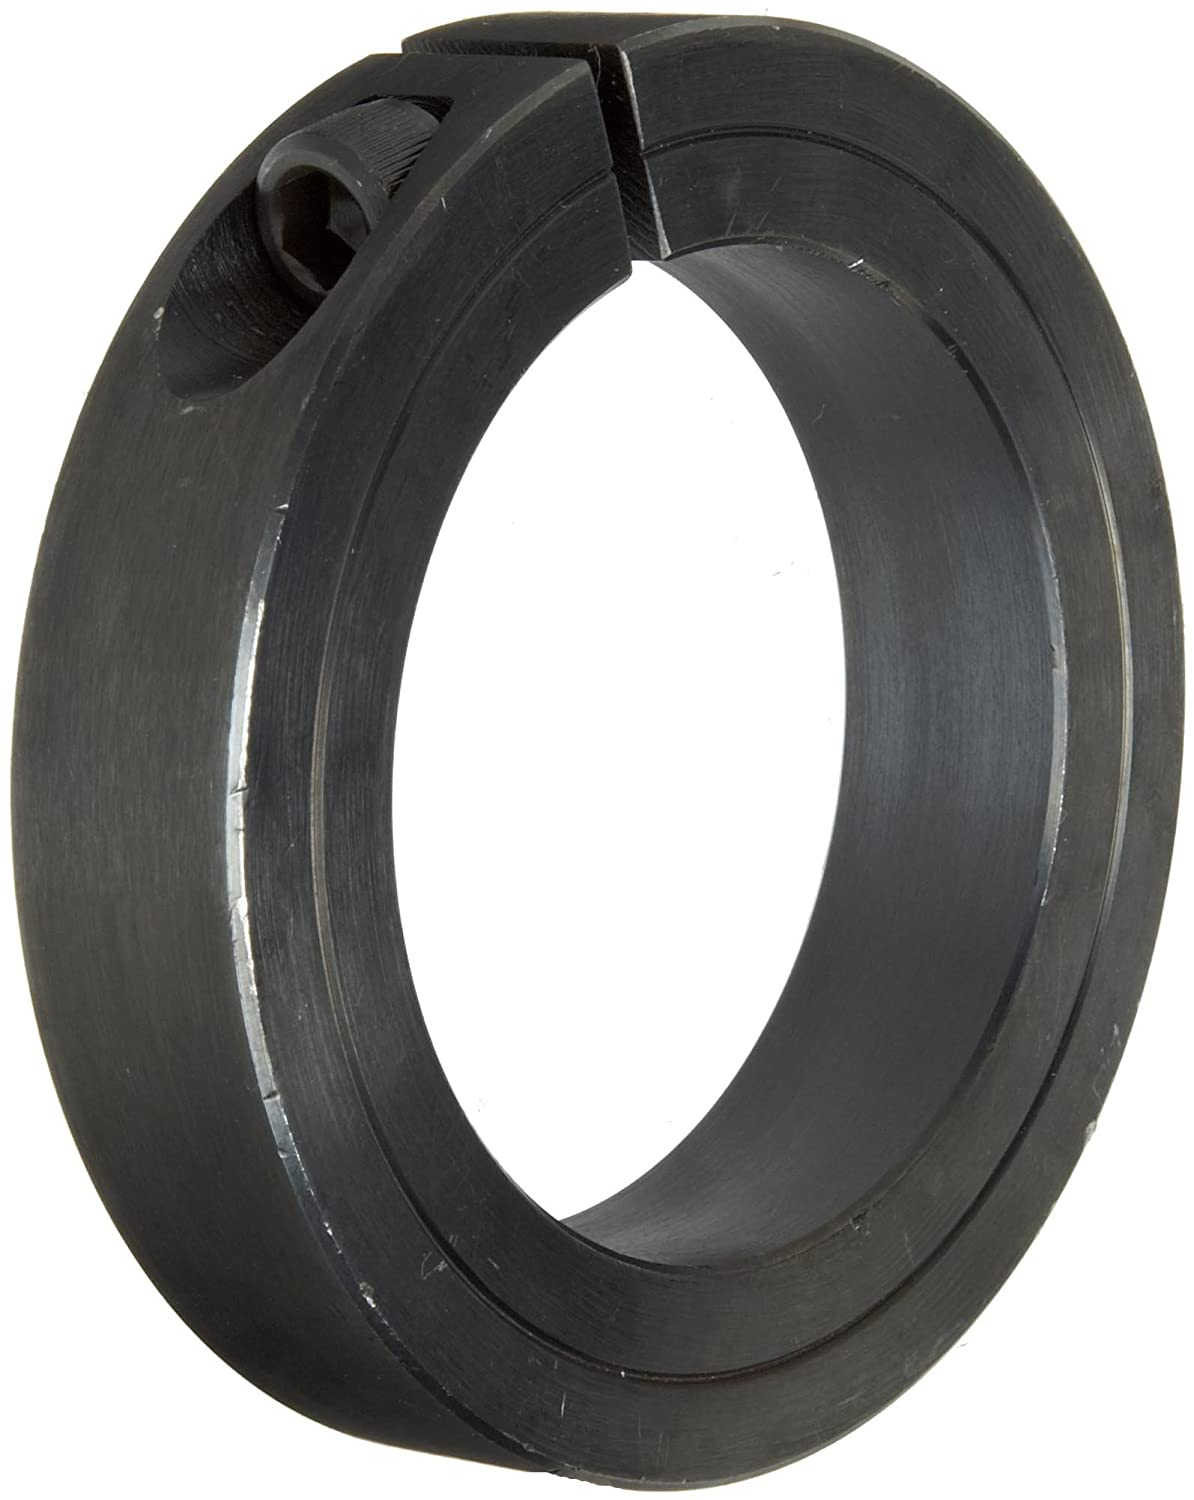 2-5//16 Bore Size Black Oxide Plating With 5//16-24 x 1 Set Screw Climax Metal 1C-231 Steel One-Piece Clamping Collar 3-1//2 OD